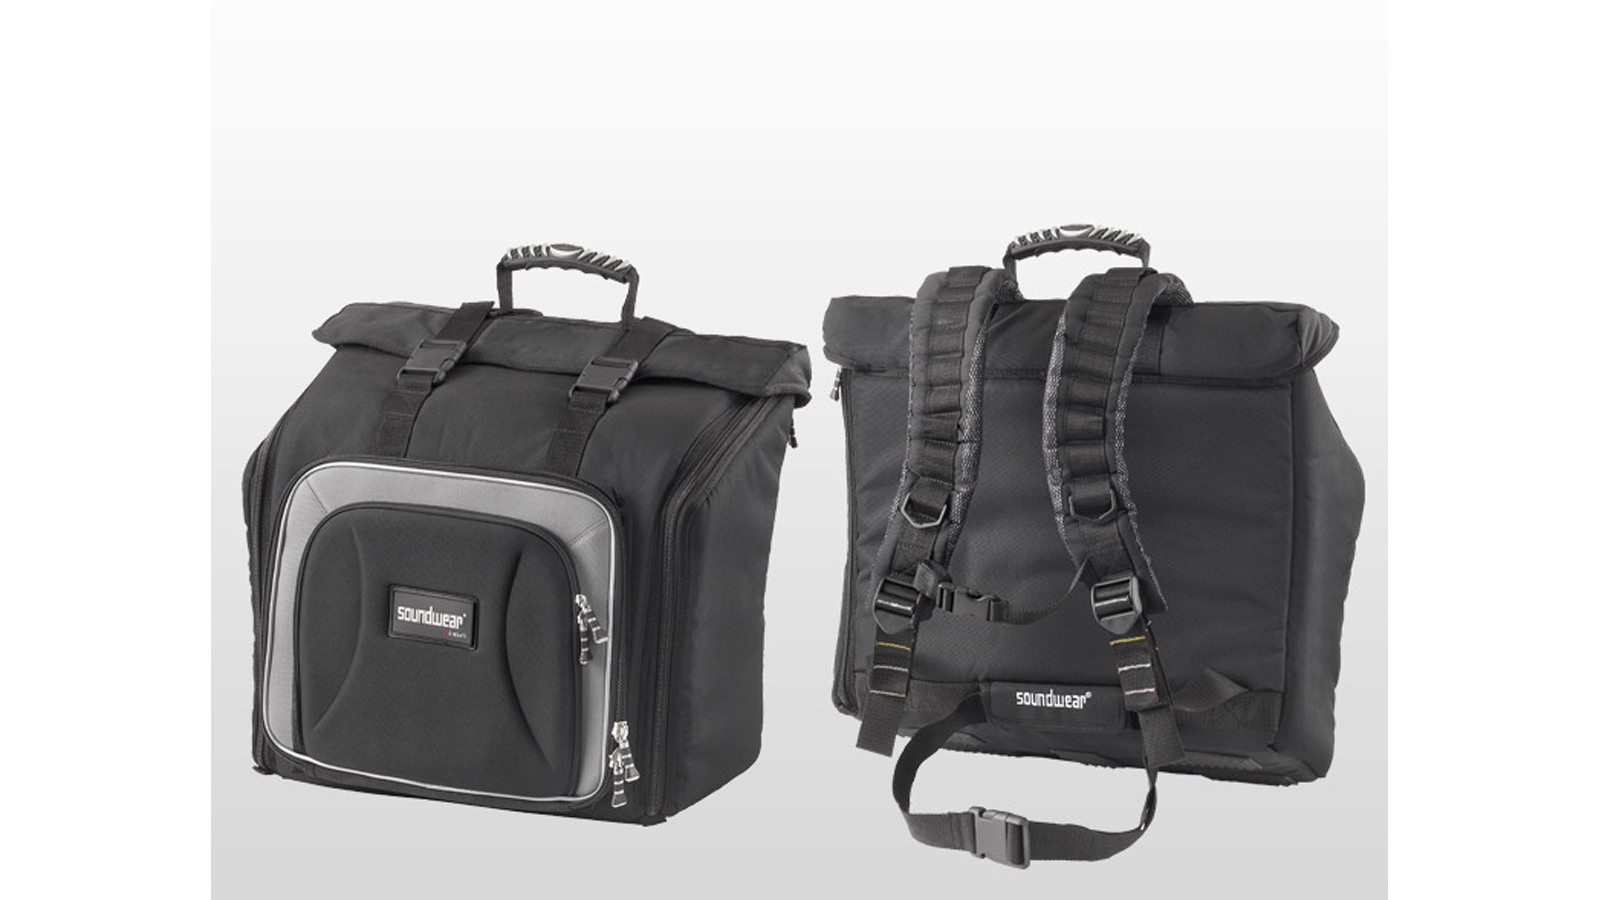 Soundwear Performer Bag für steirisches Akkordeon 4-reihig